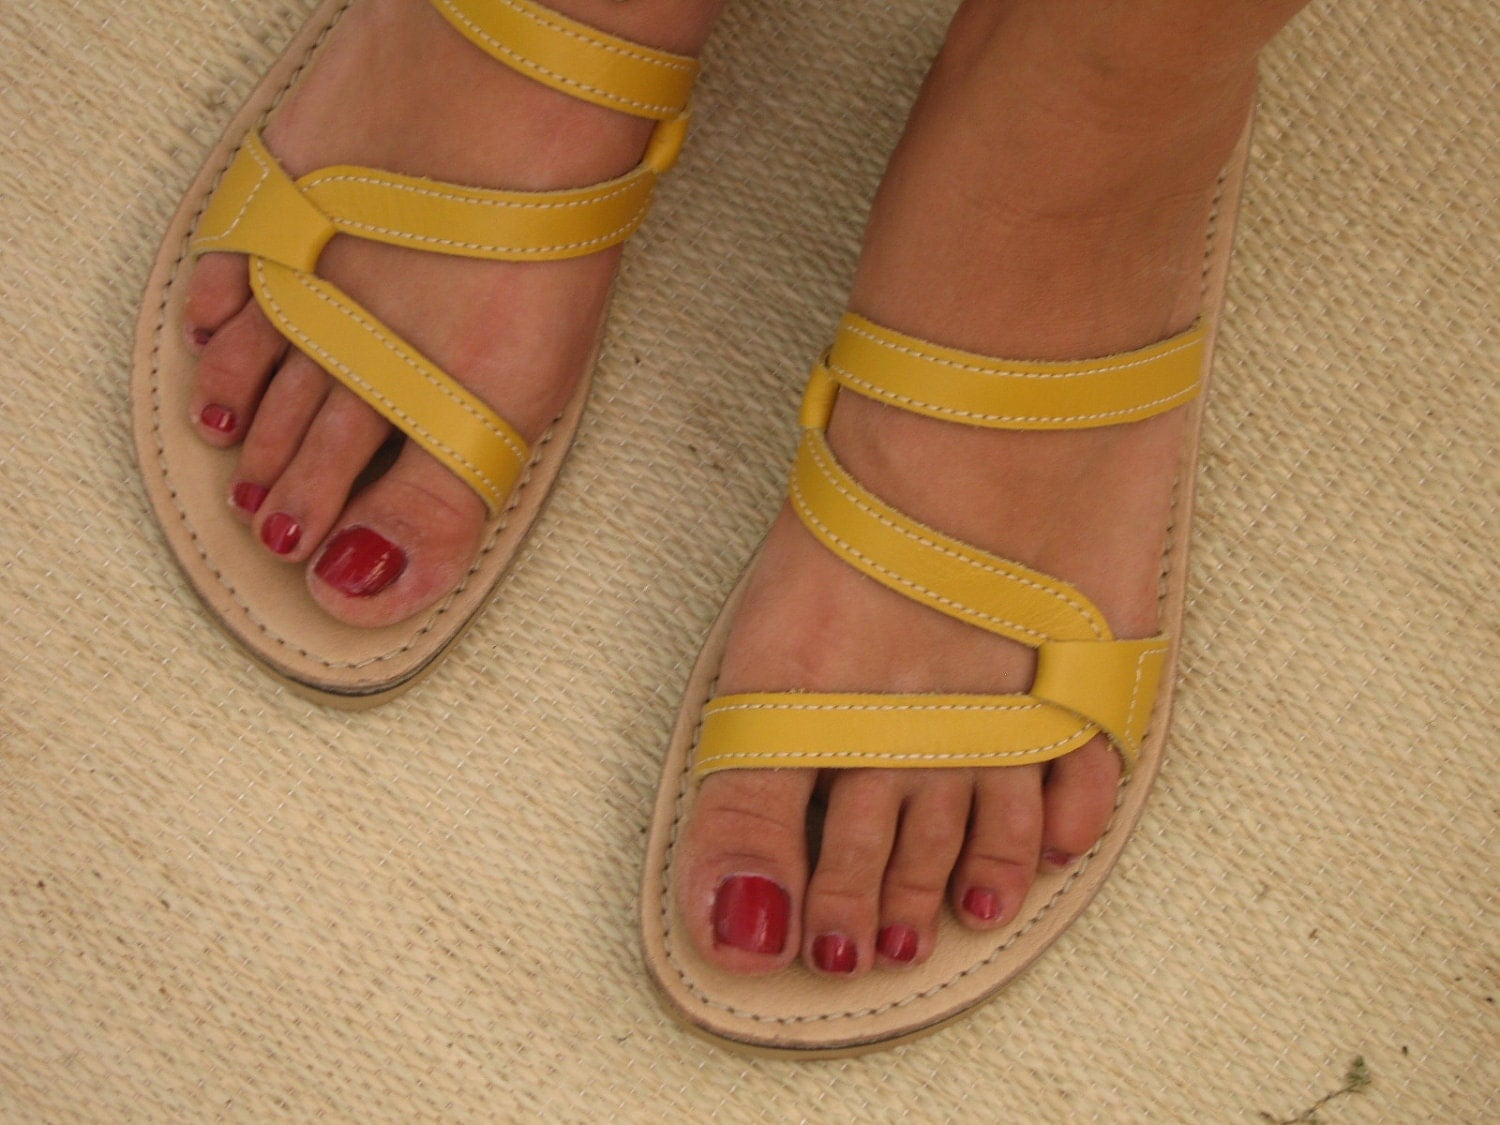 Womens sandals etsy - Like This Item